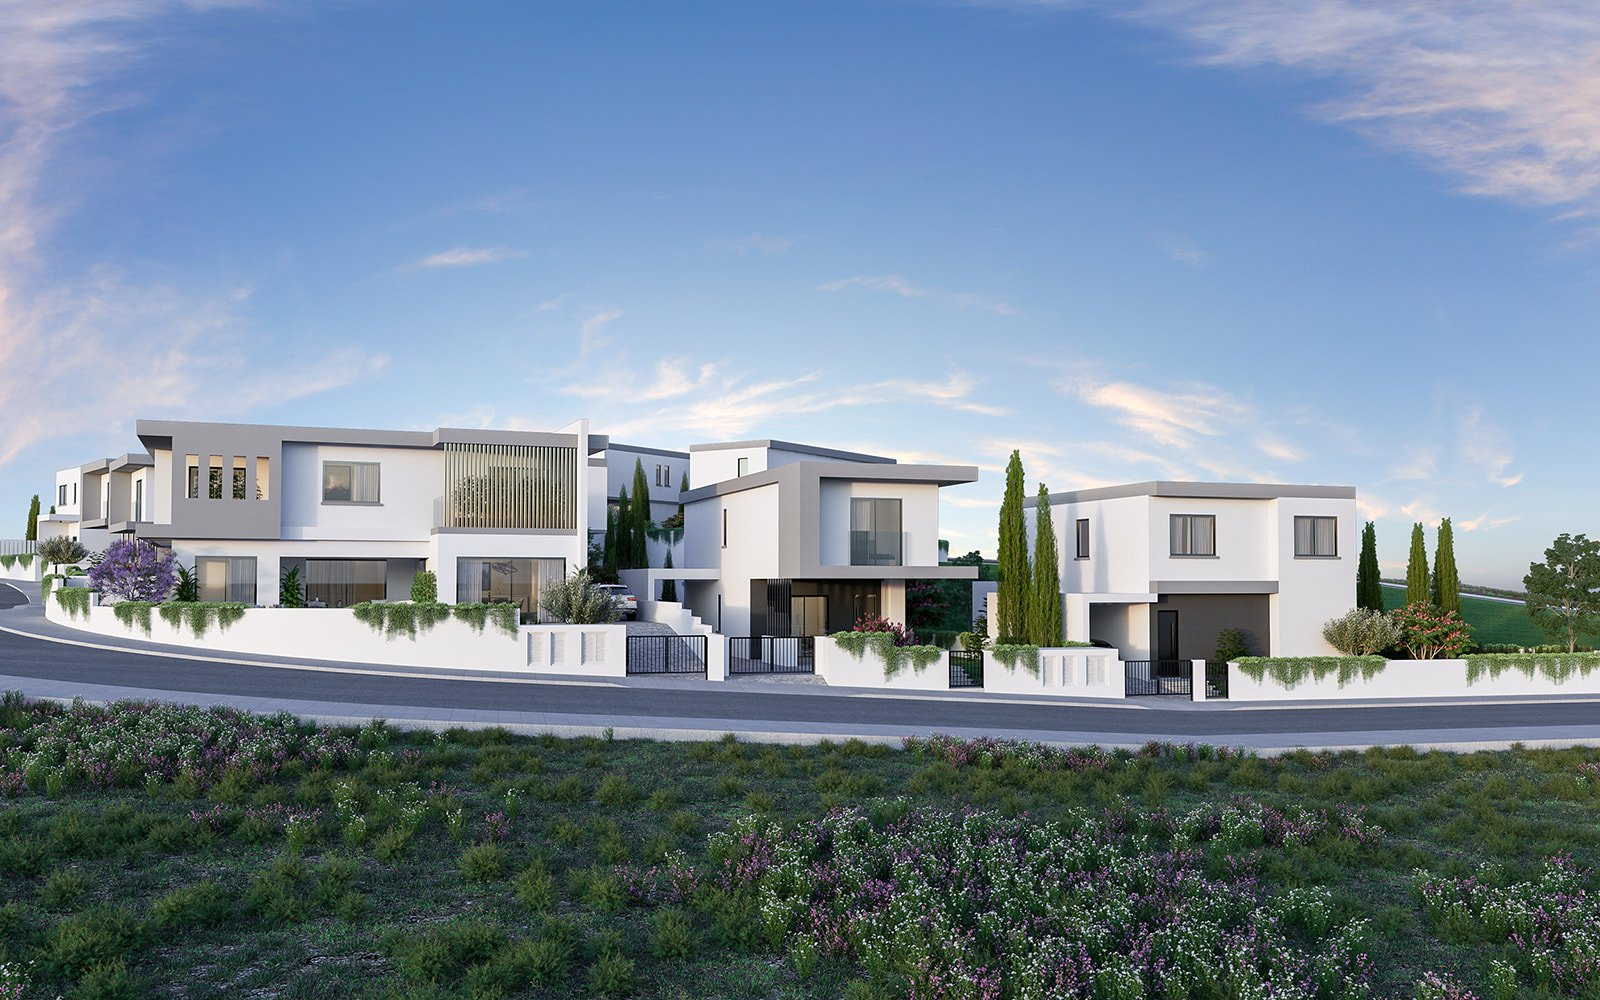 The 150 SE Project Houses 1-10-11 of Chic Investments